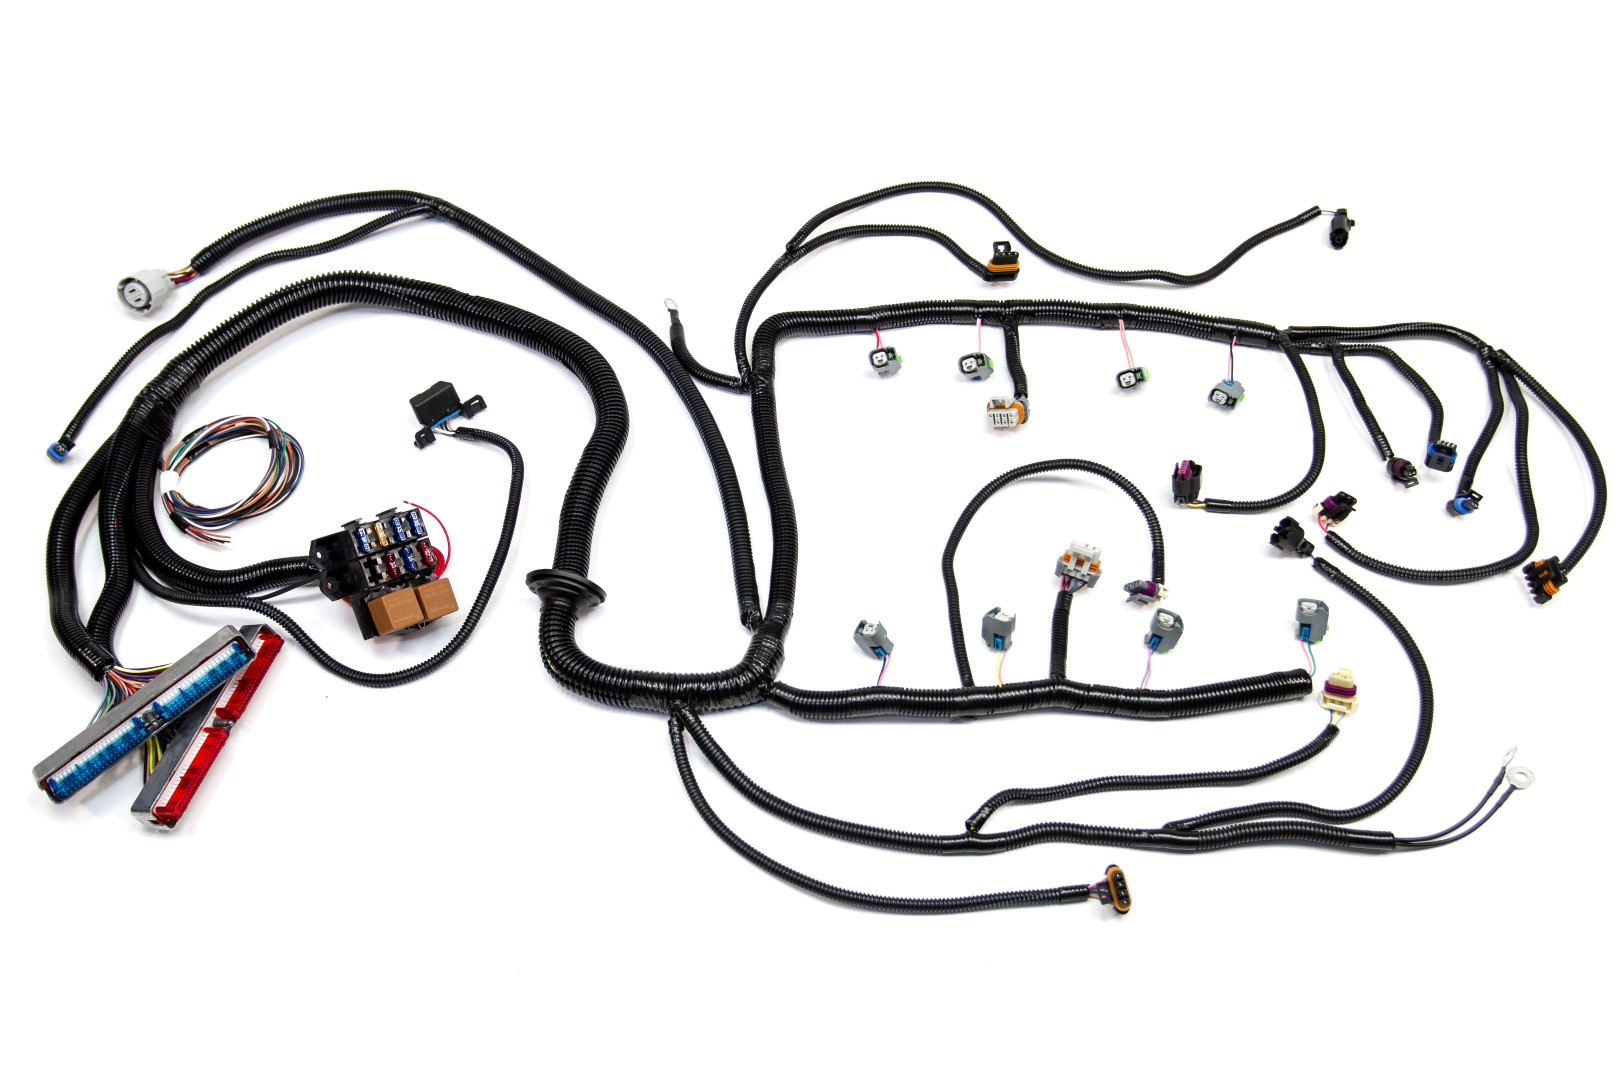 ls2 wiring harness instructions